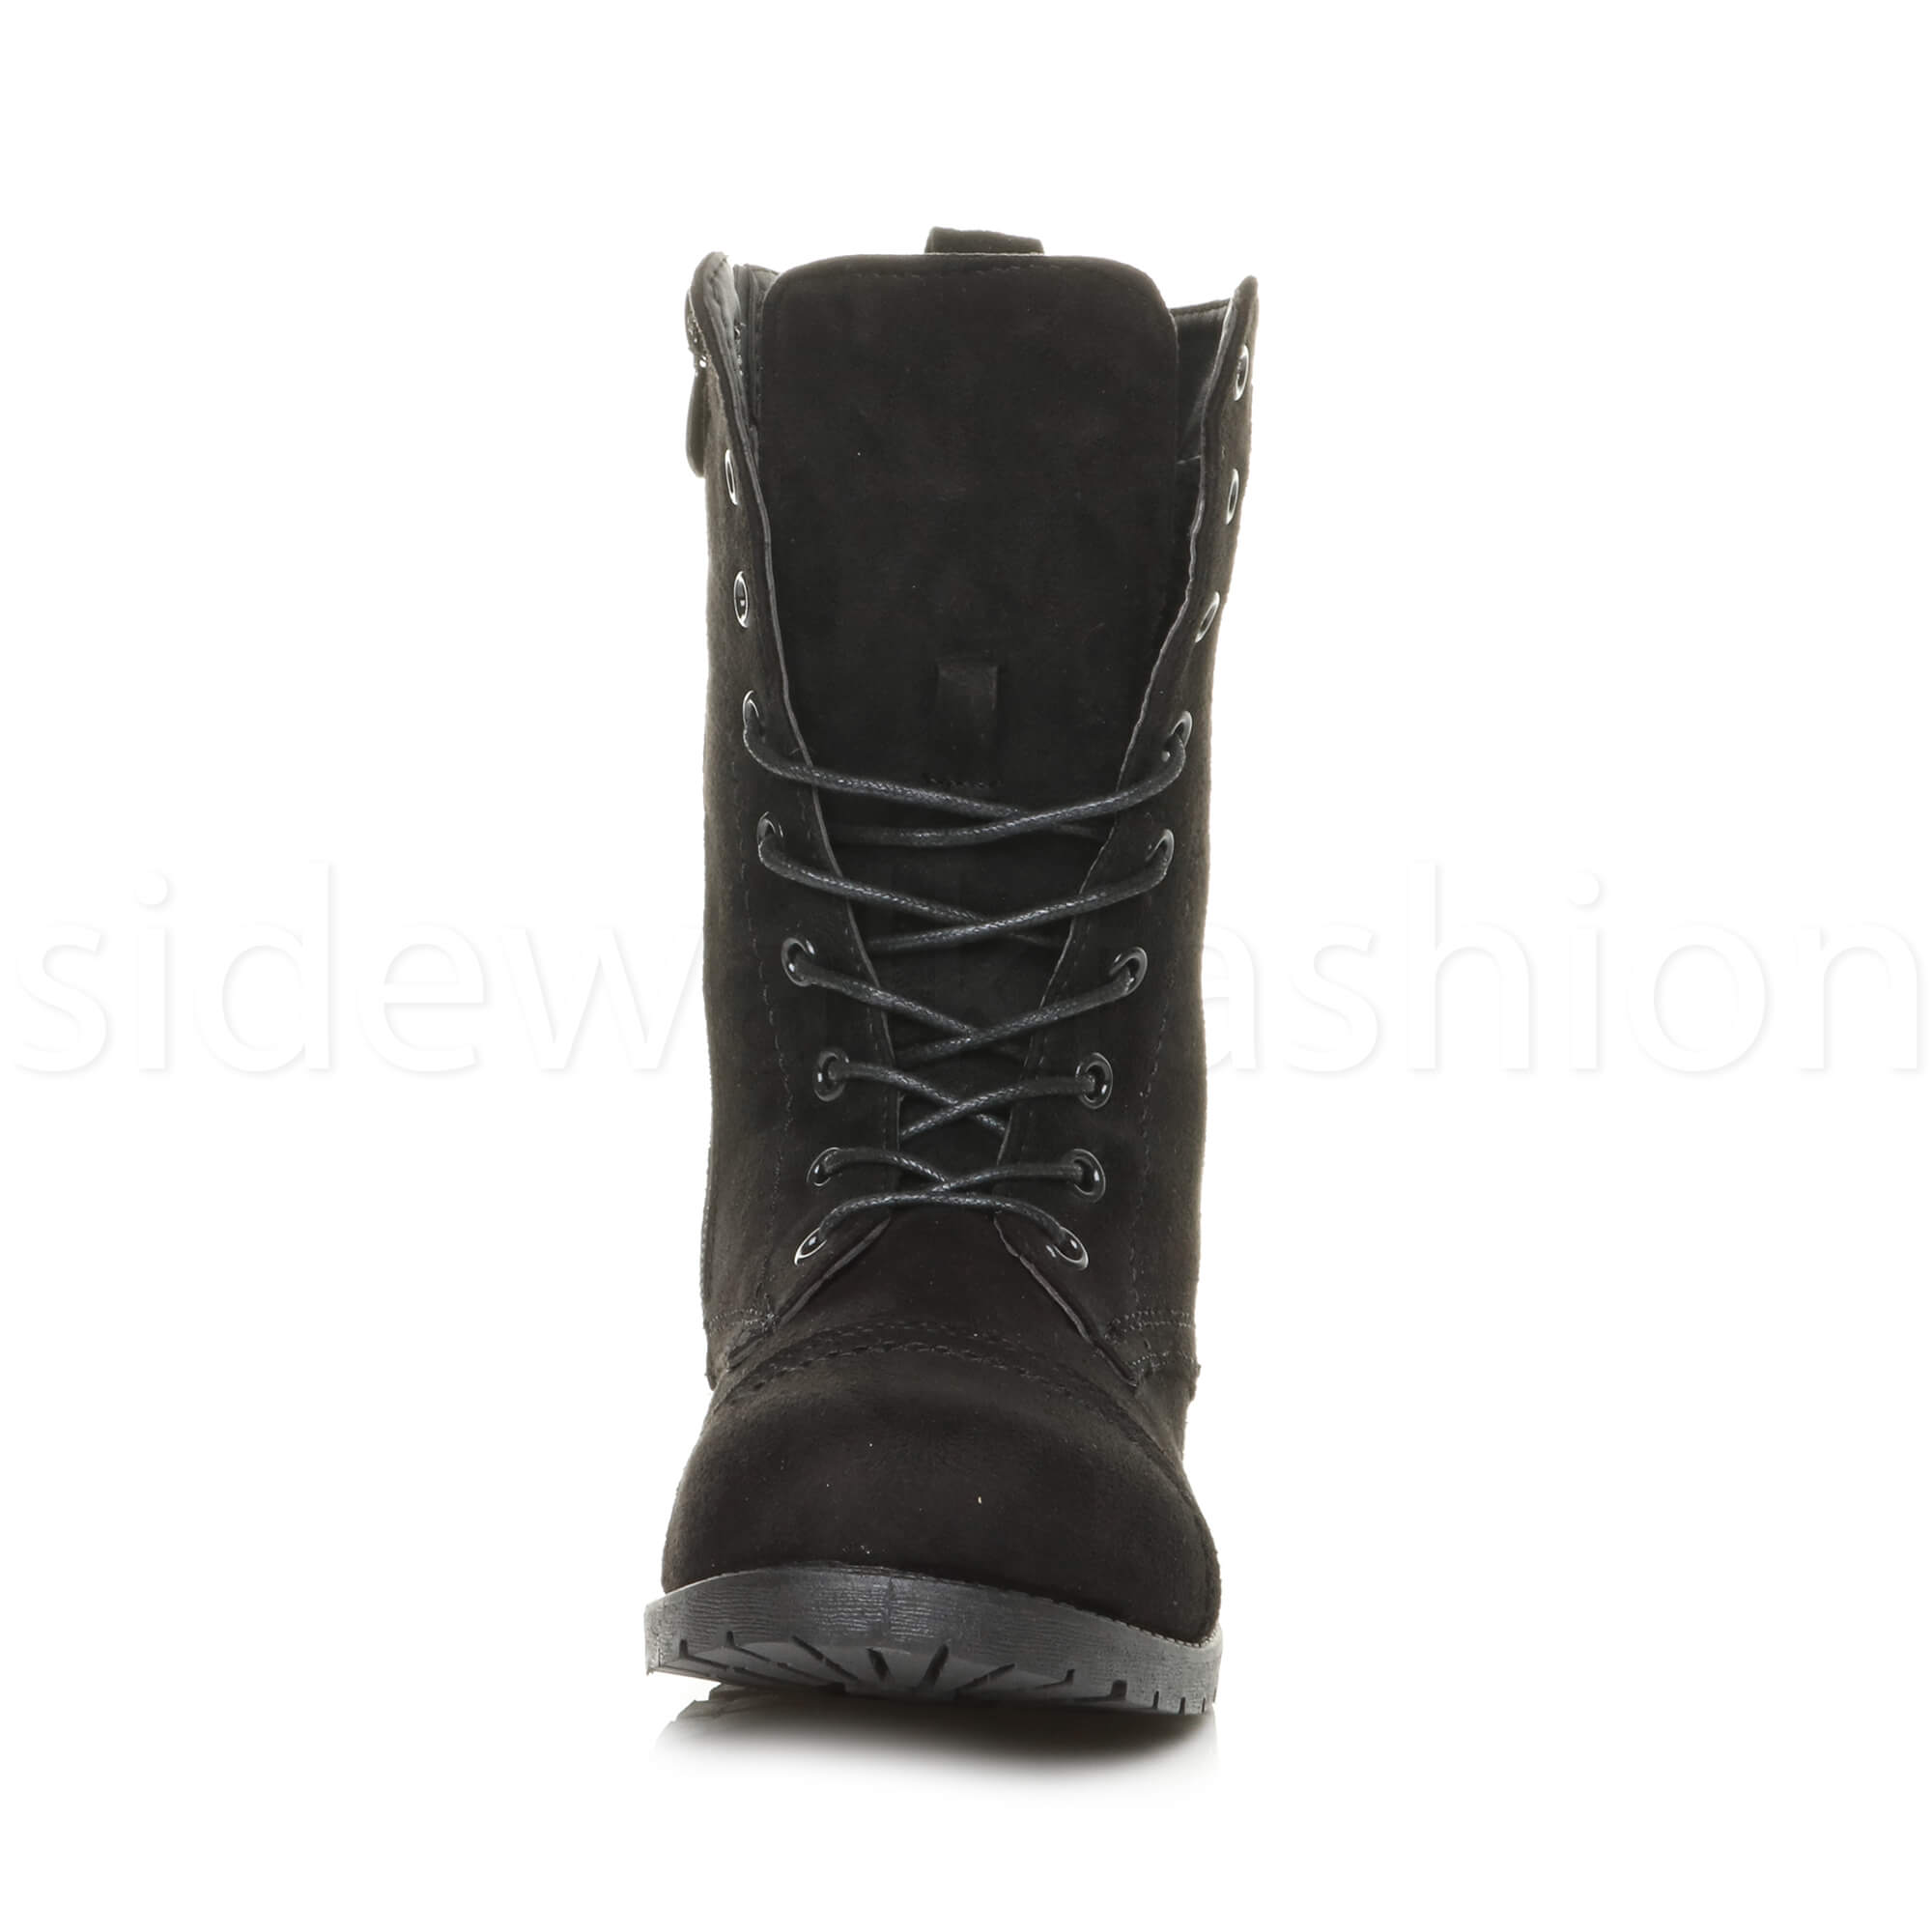 Womens-ladies-low-heel-flat-lace-up-zip-combat-biker-military-ankle-boots-size thumbnail 71